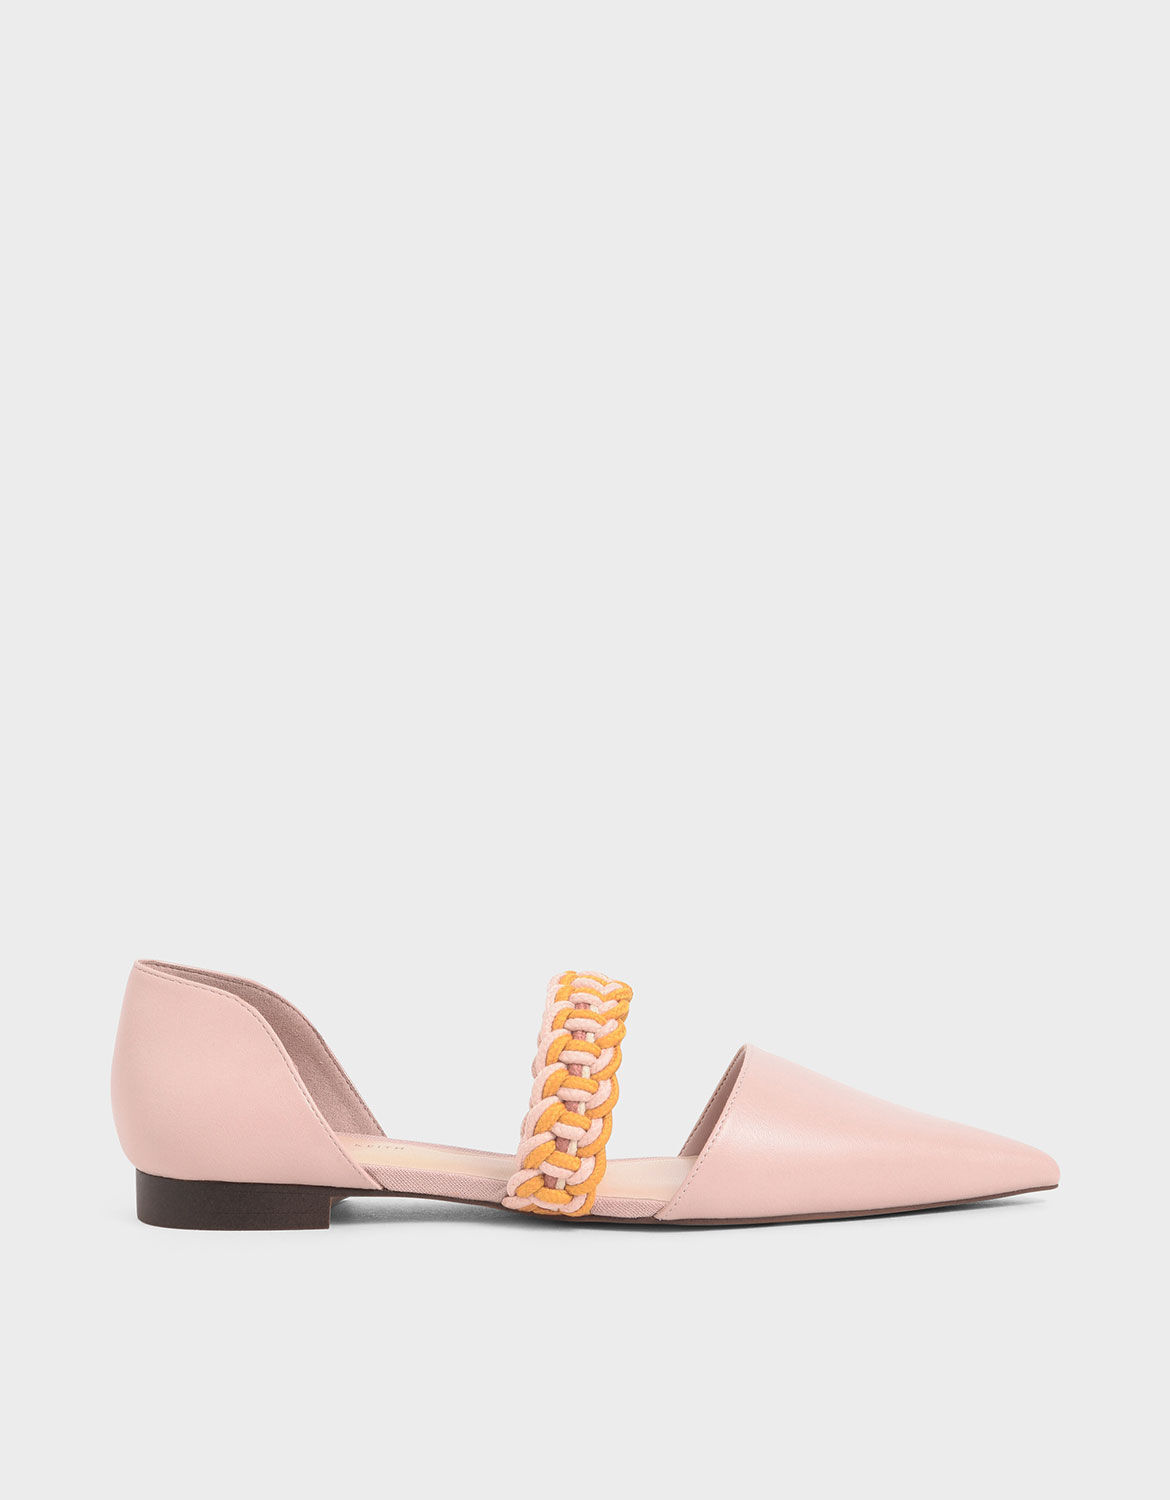 Nude Braided-Strap Mary Jane Flats